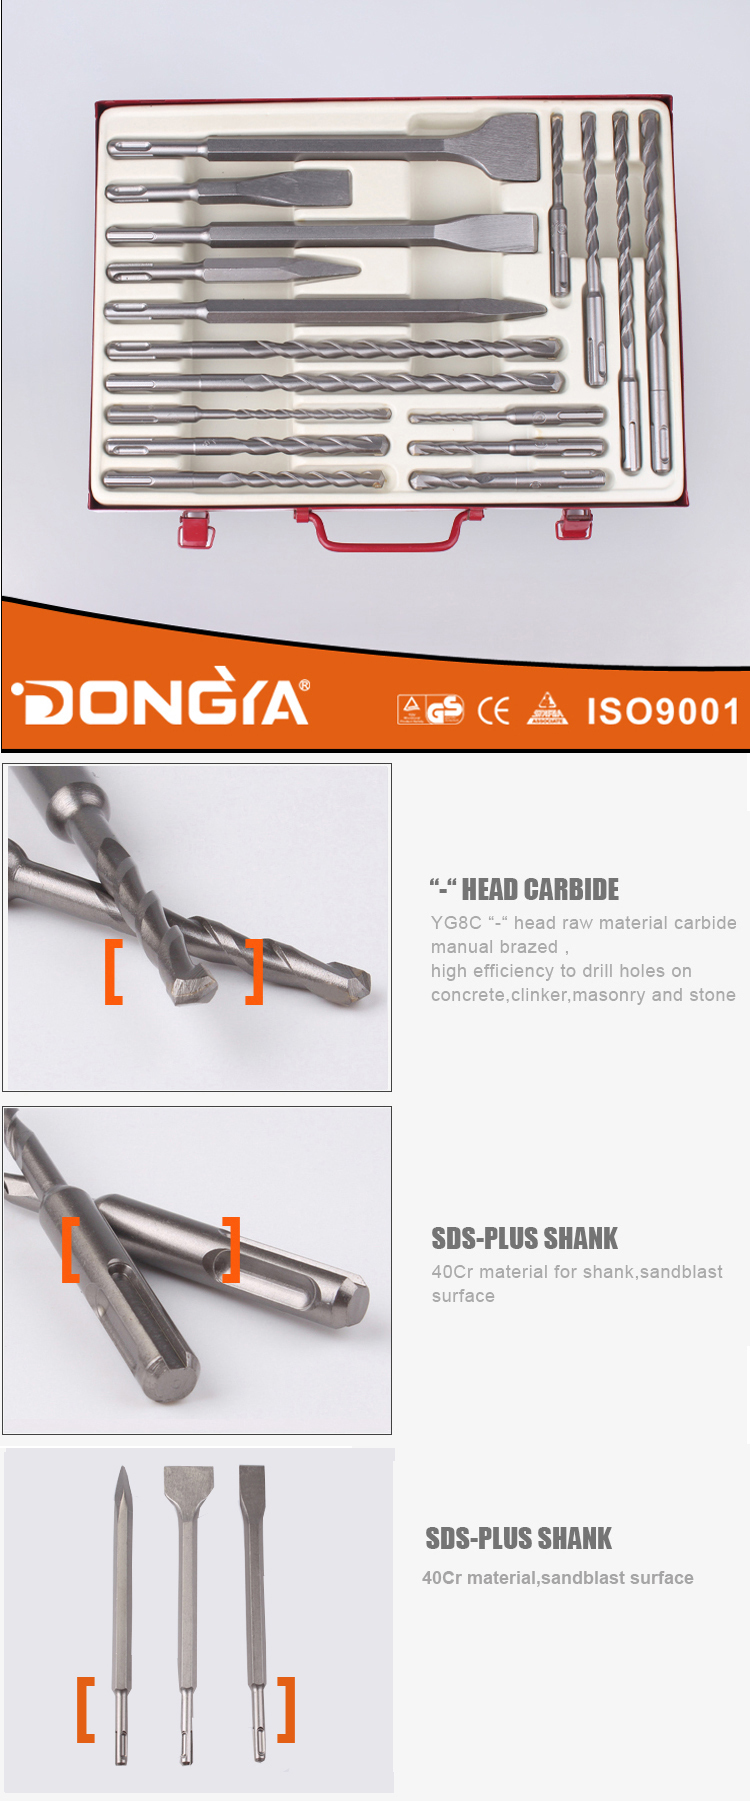 Dongya 17PCS SDS Rotary Hammer Drill Bit Set